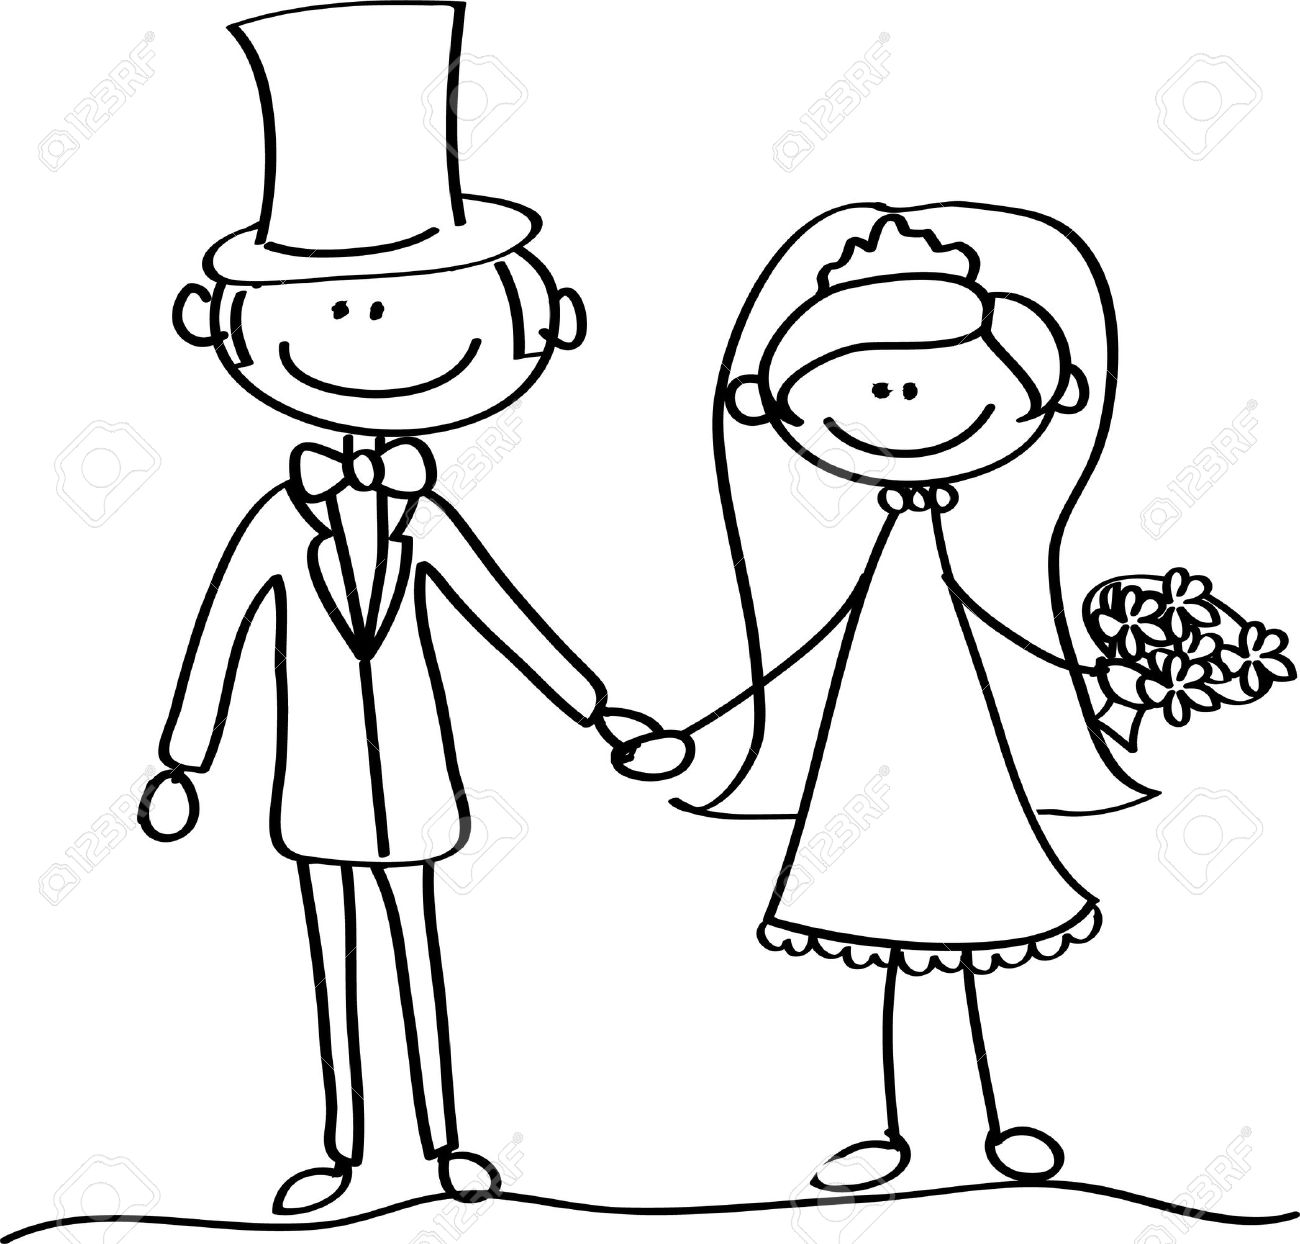 1300x1244 The Bride And Groom At A Wedding Royalty Free Cliparts, Vectors